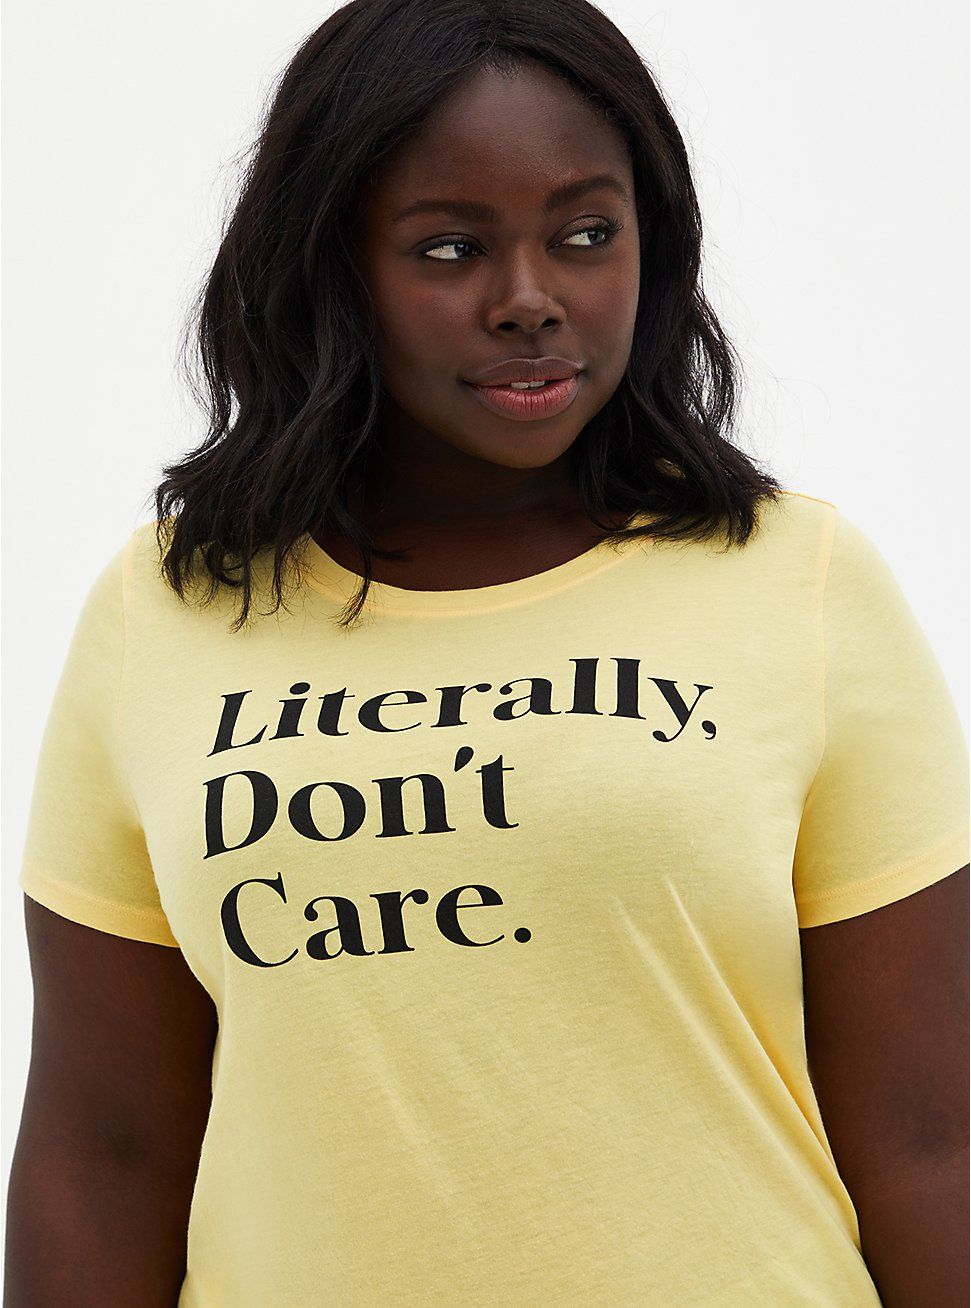 Classic Fit - Literally Don't Care Yellow Crew Tee , SUNDRESS, hi-res